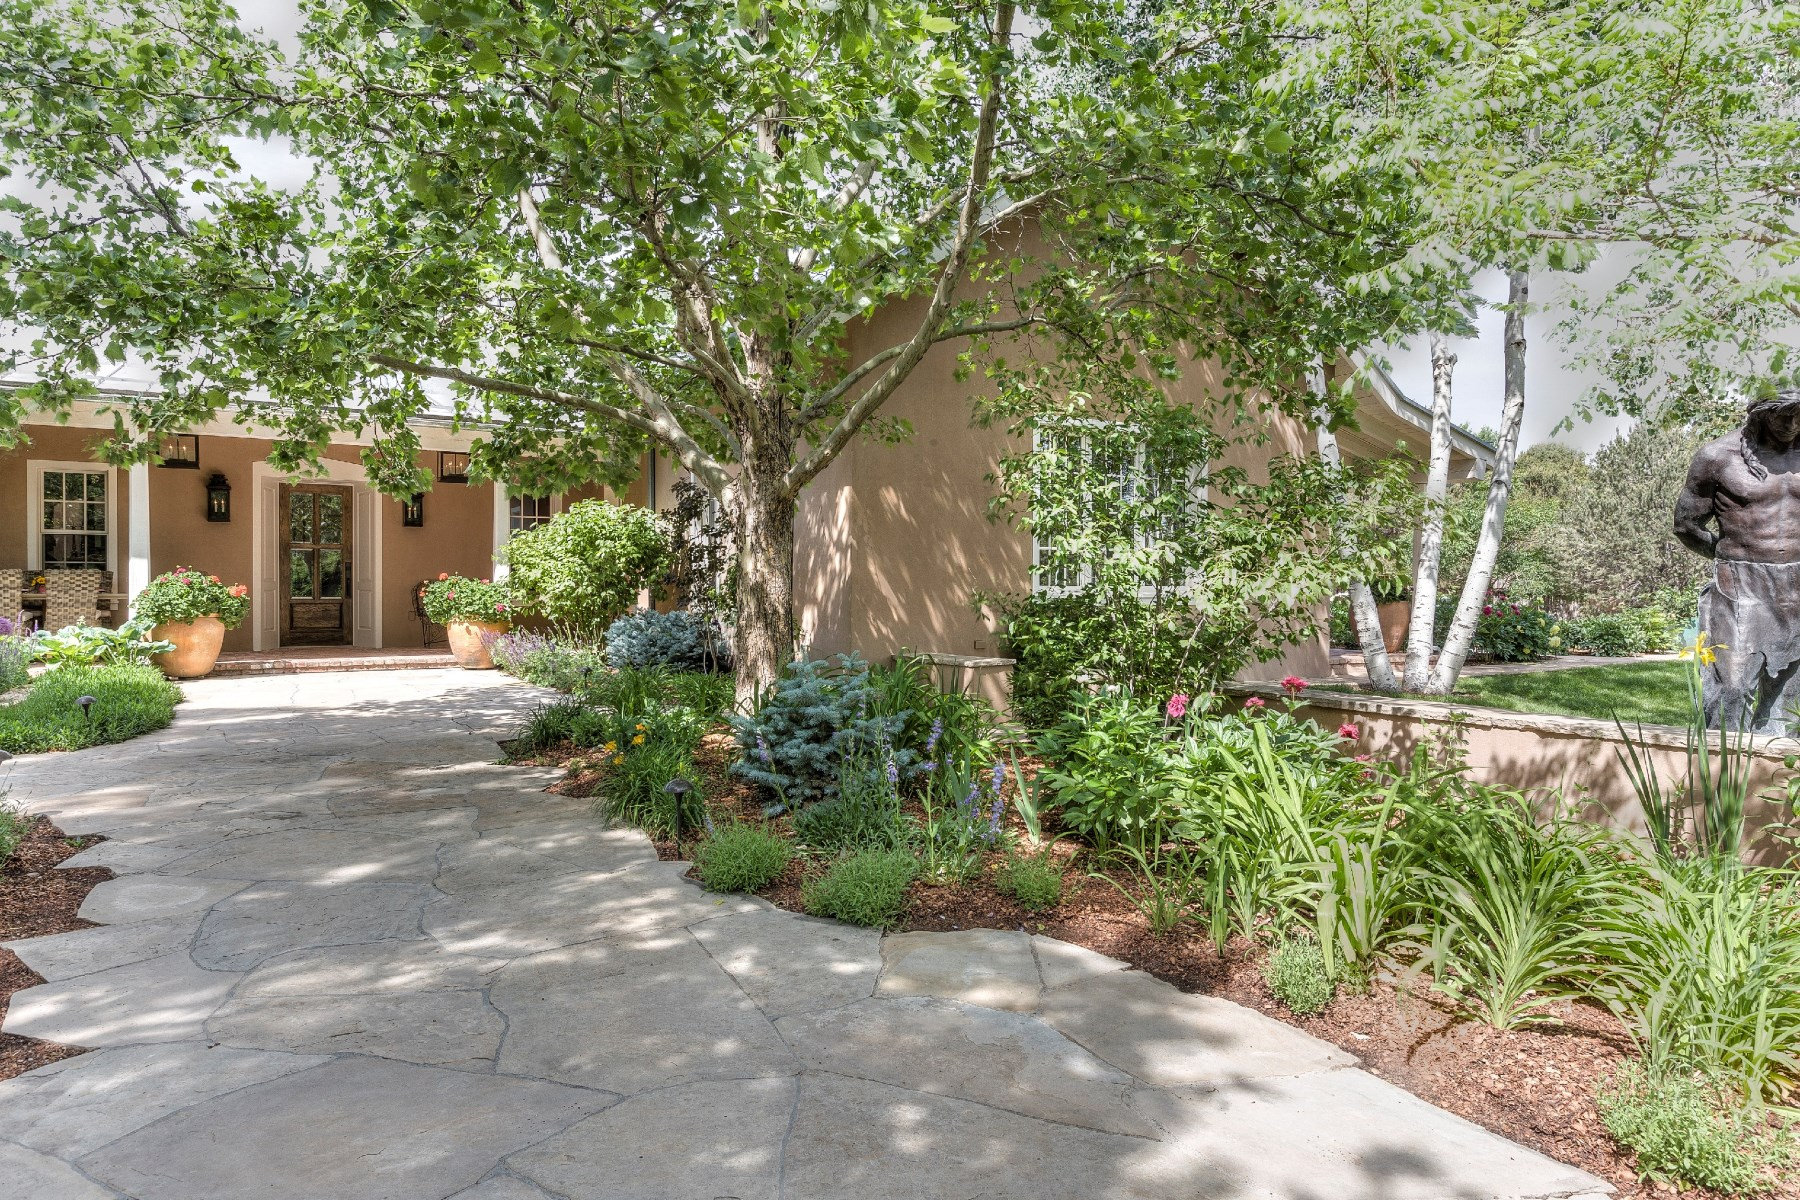 Single Family Home for Sale at 1434-A Bishops Lodge Road 1434-A Bishops Lodge Rd Santa Fe, New Mexico 87506 United States